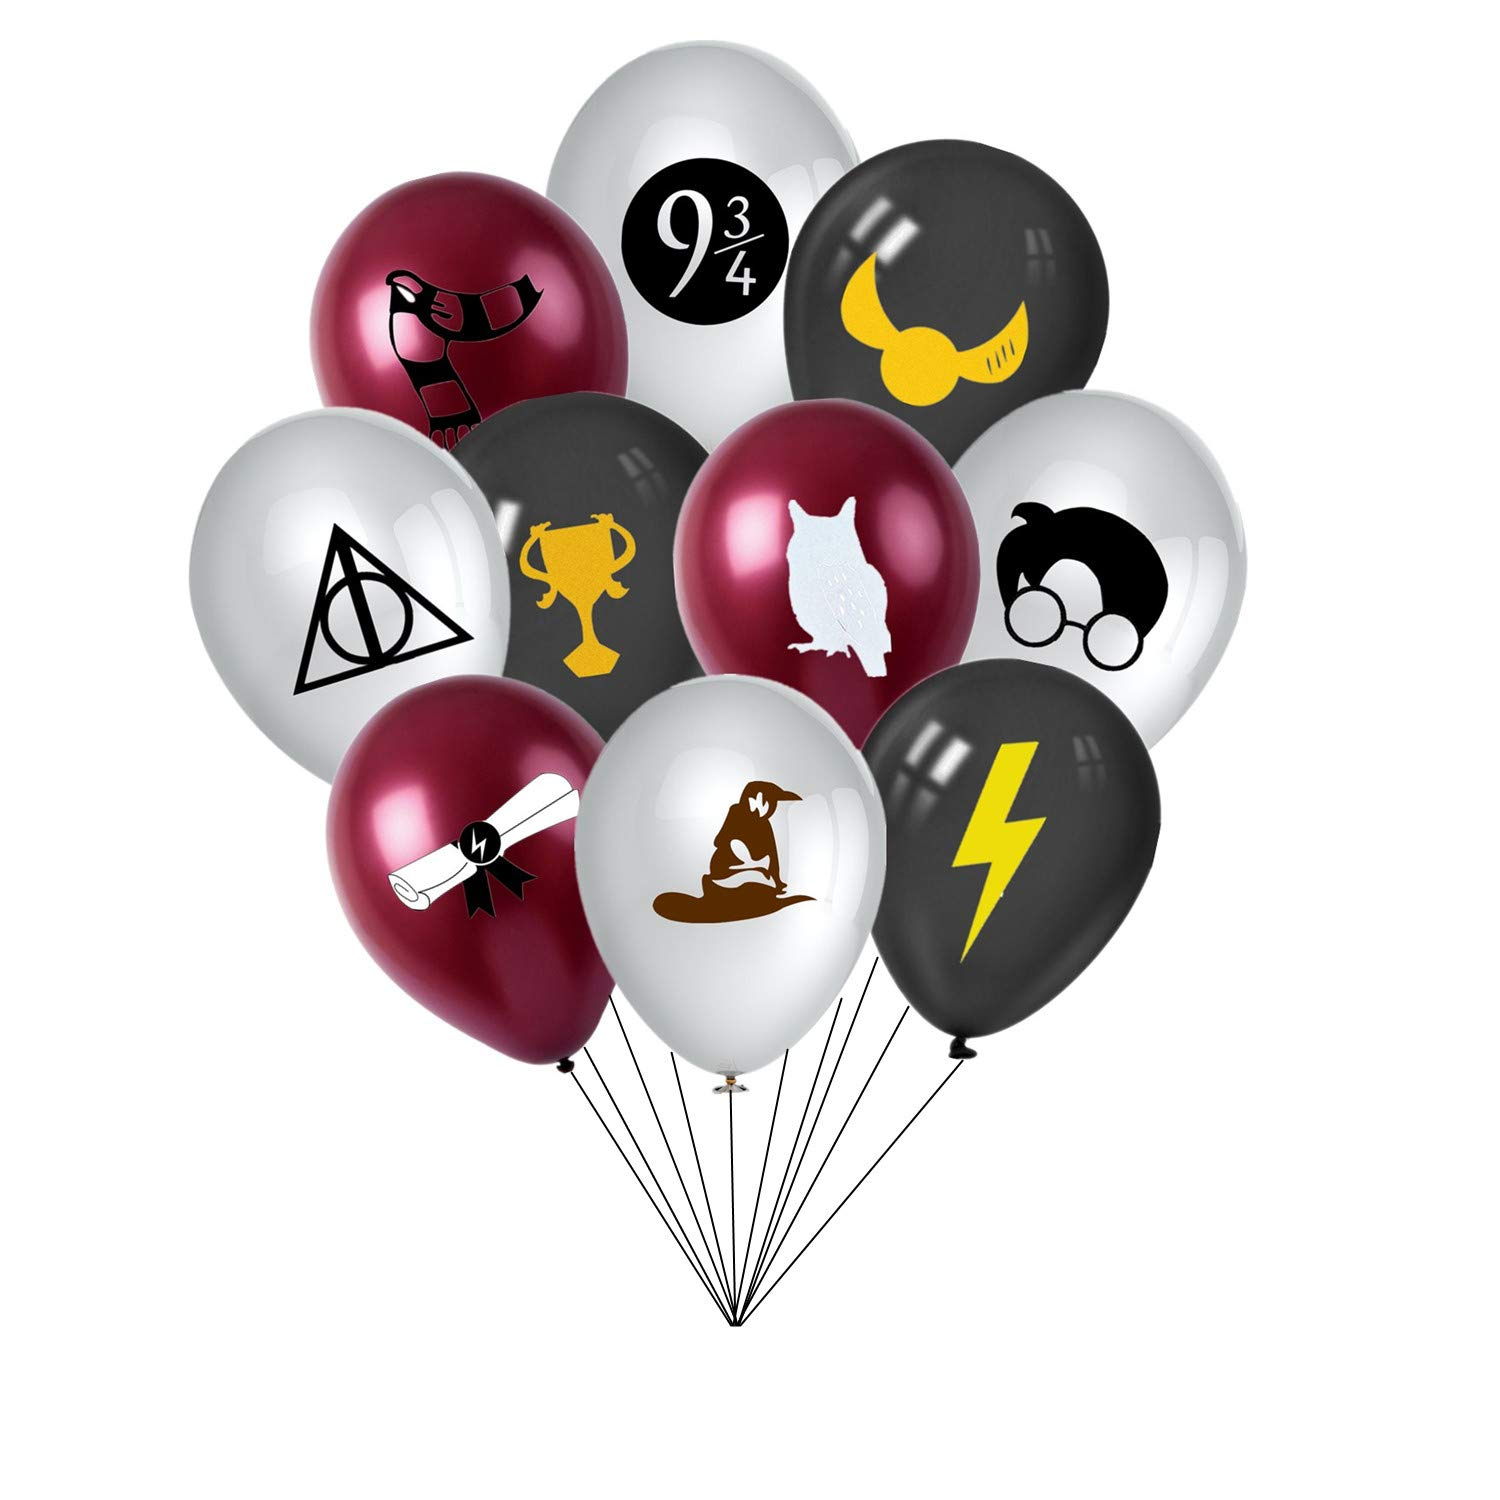 30PCS Magic Wizard School Birthday Party Balloons for Kids Potter Party Decorations Supplies